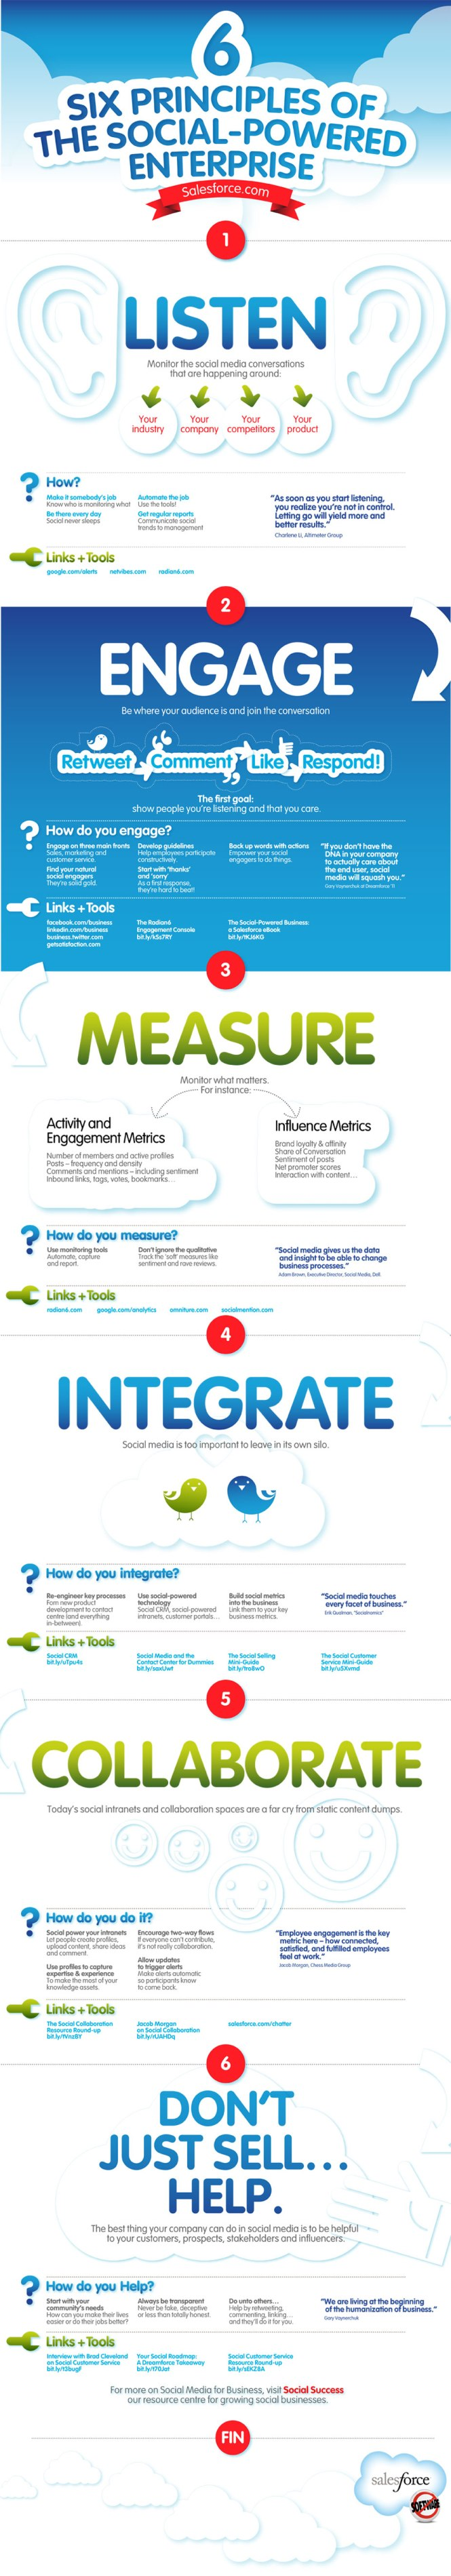 Salesforce_SixPrinciples_Infographic